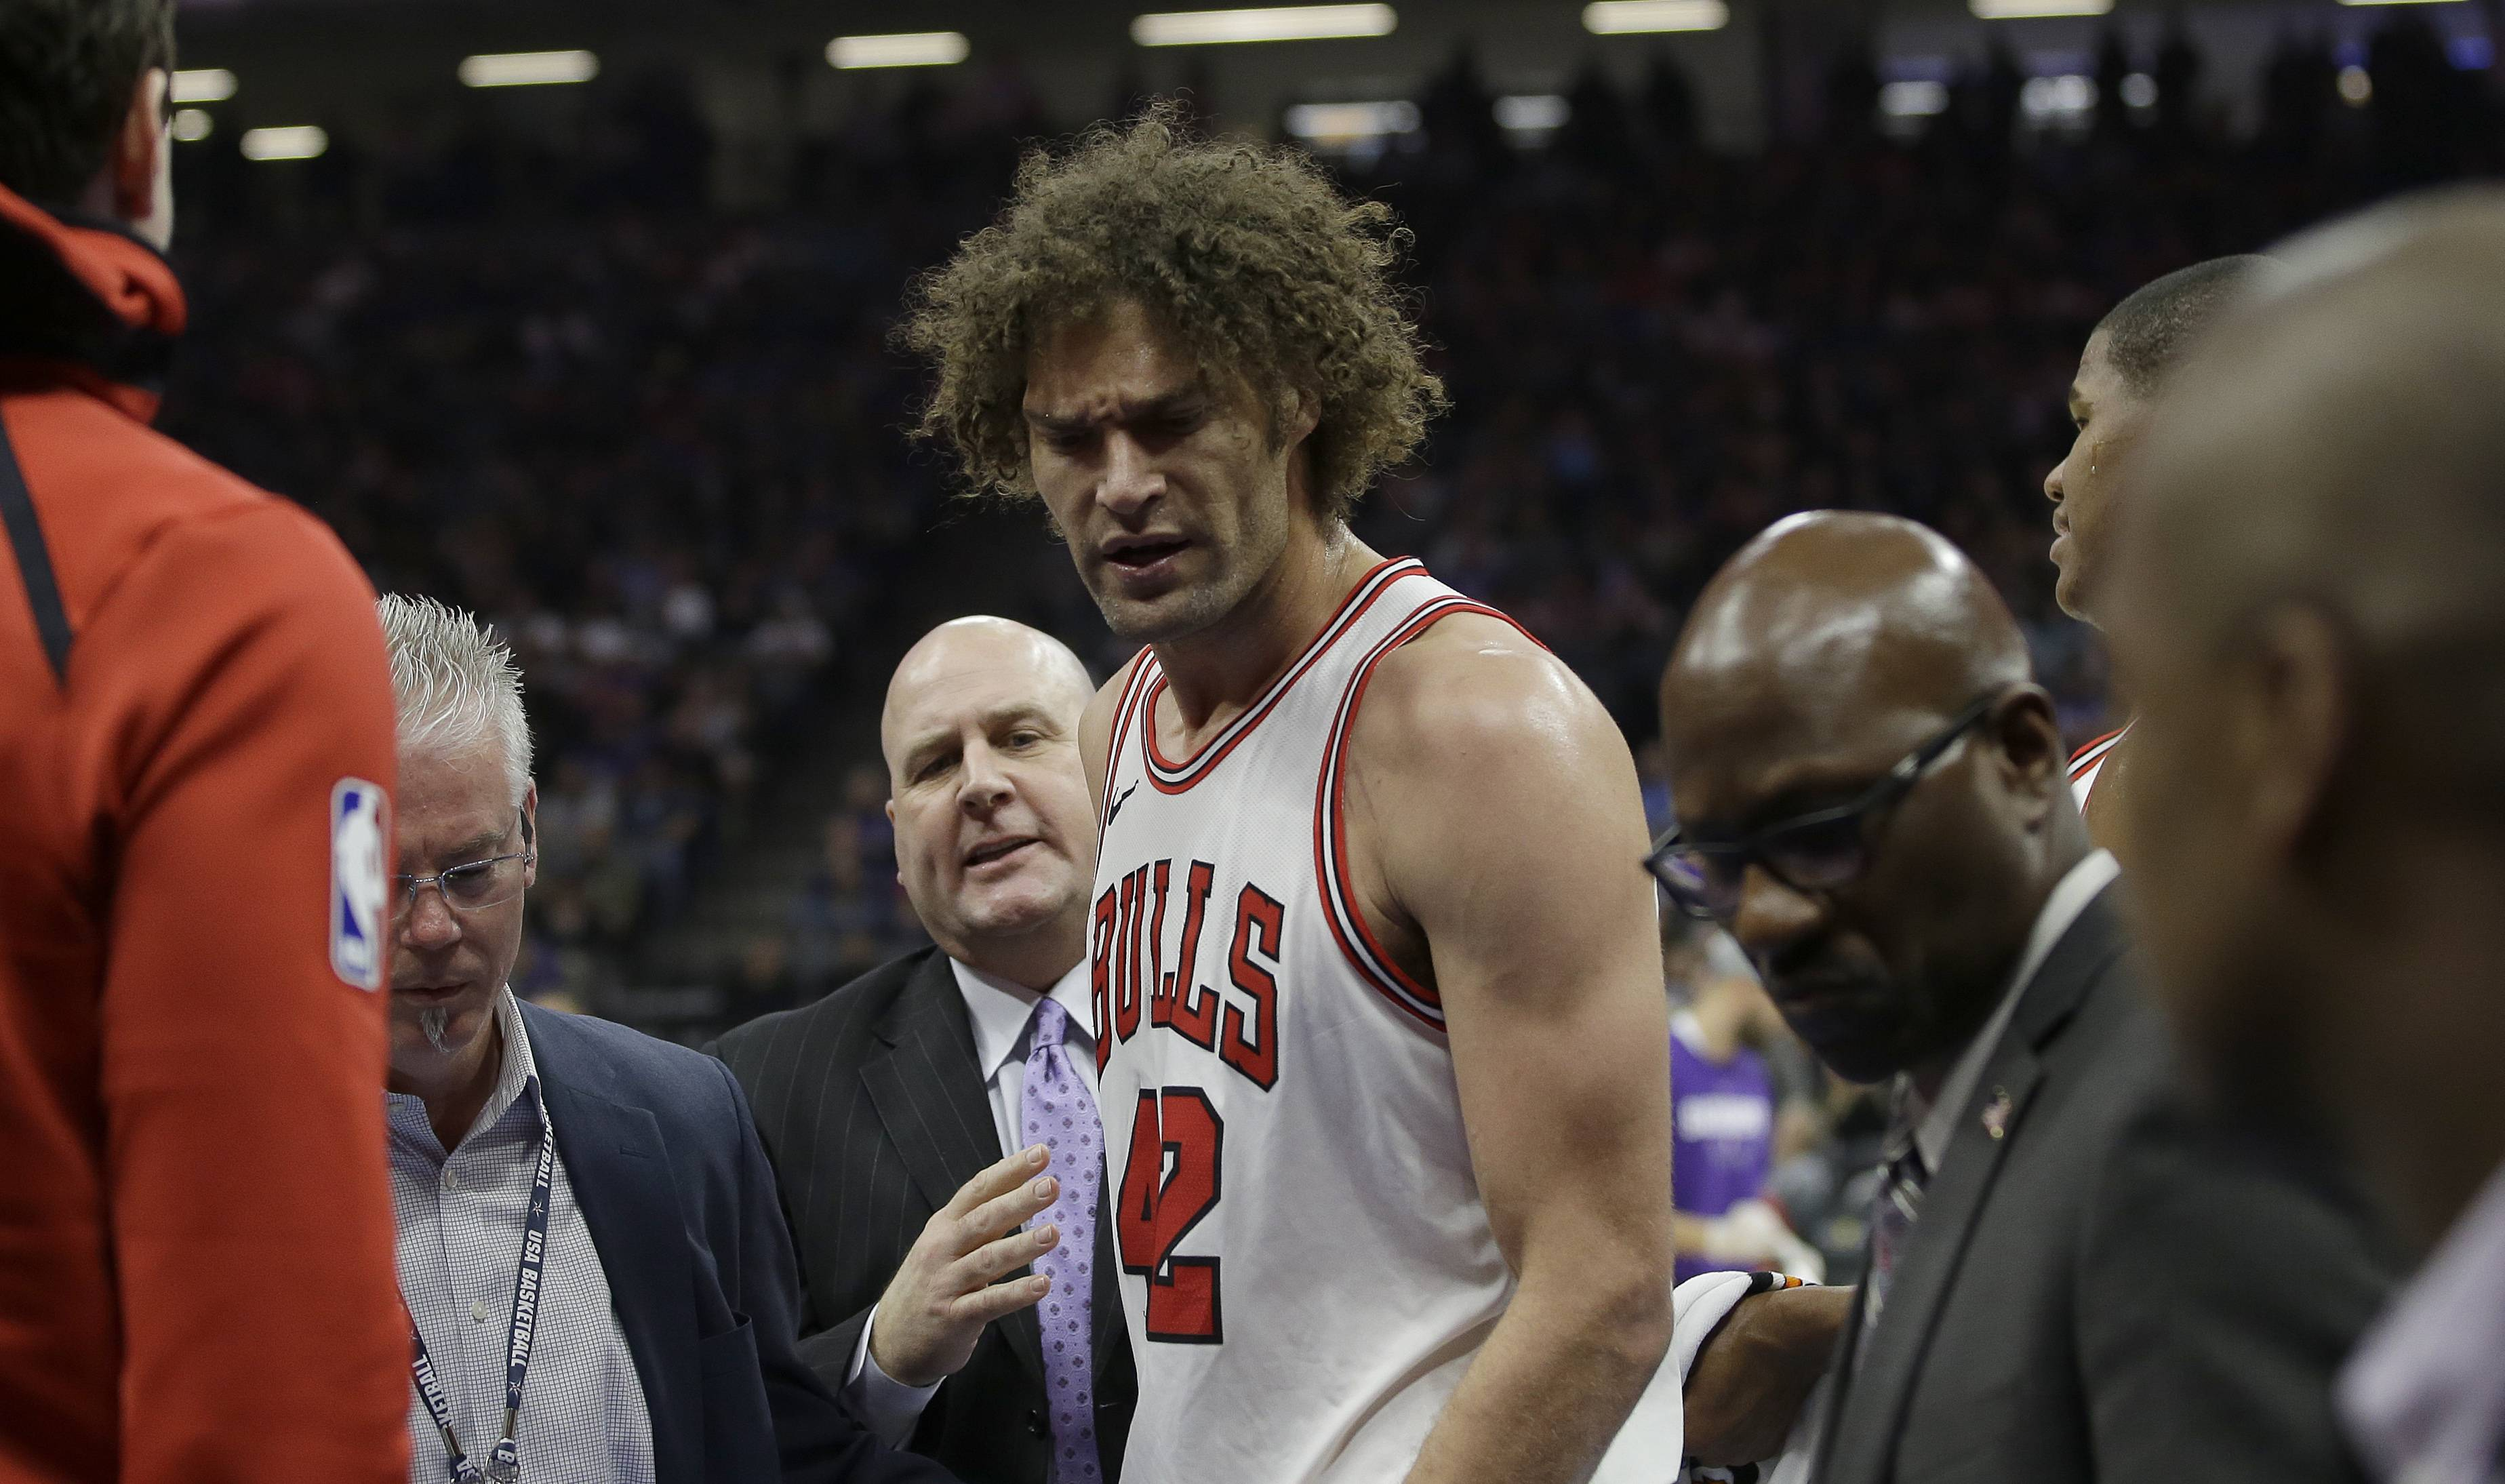 Chicago Bulls center Robin Lopez leaves the court after being ejected from the game when he received two technical foul during the second quarter of an NBA basketball game against the Sacramento Kings Monday, Feb. 5, 2018, in Sacramento, Calif. (AP Photo/Rich Pedroncelli)